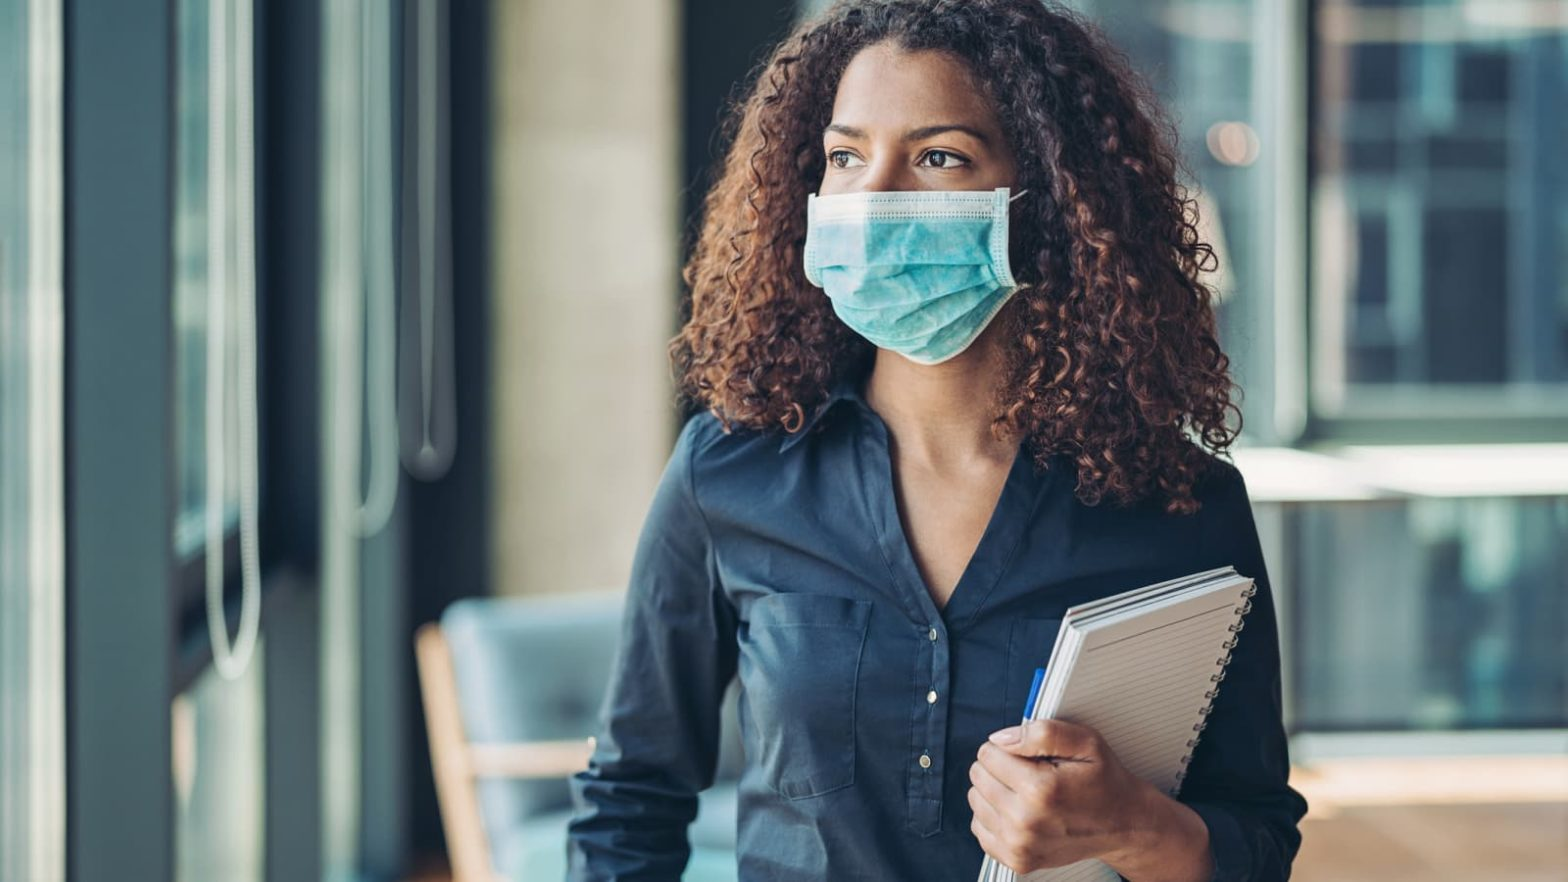 Photo of a multiracial woman wearing a blue medical face mask and carrying a notebook in an office setting